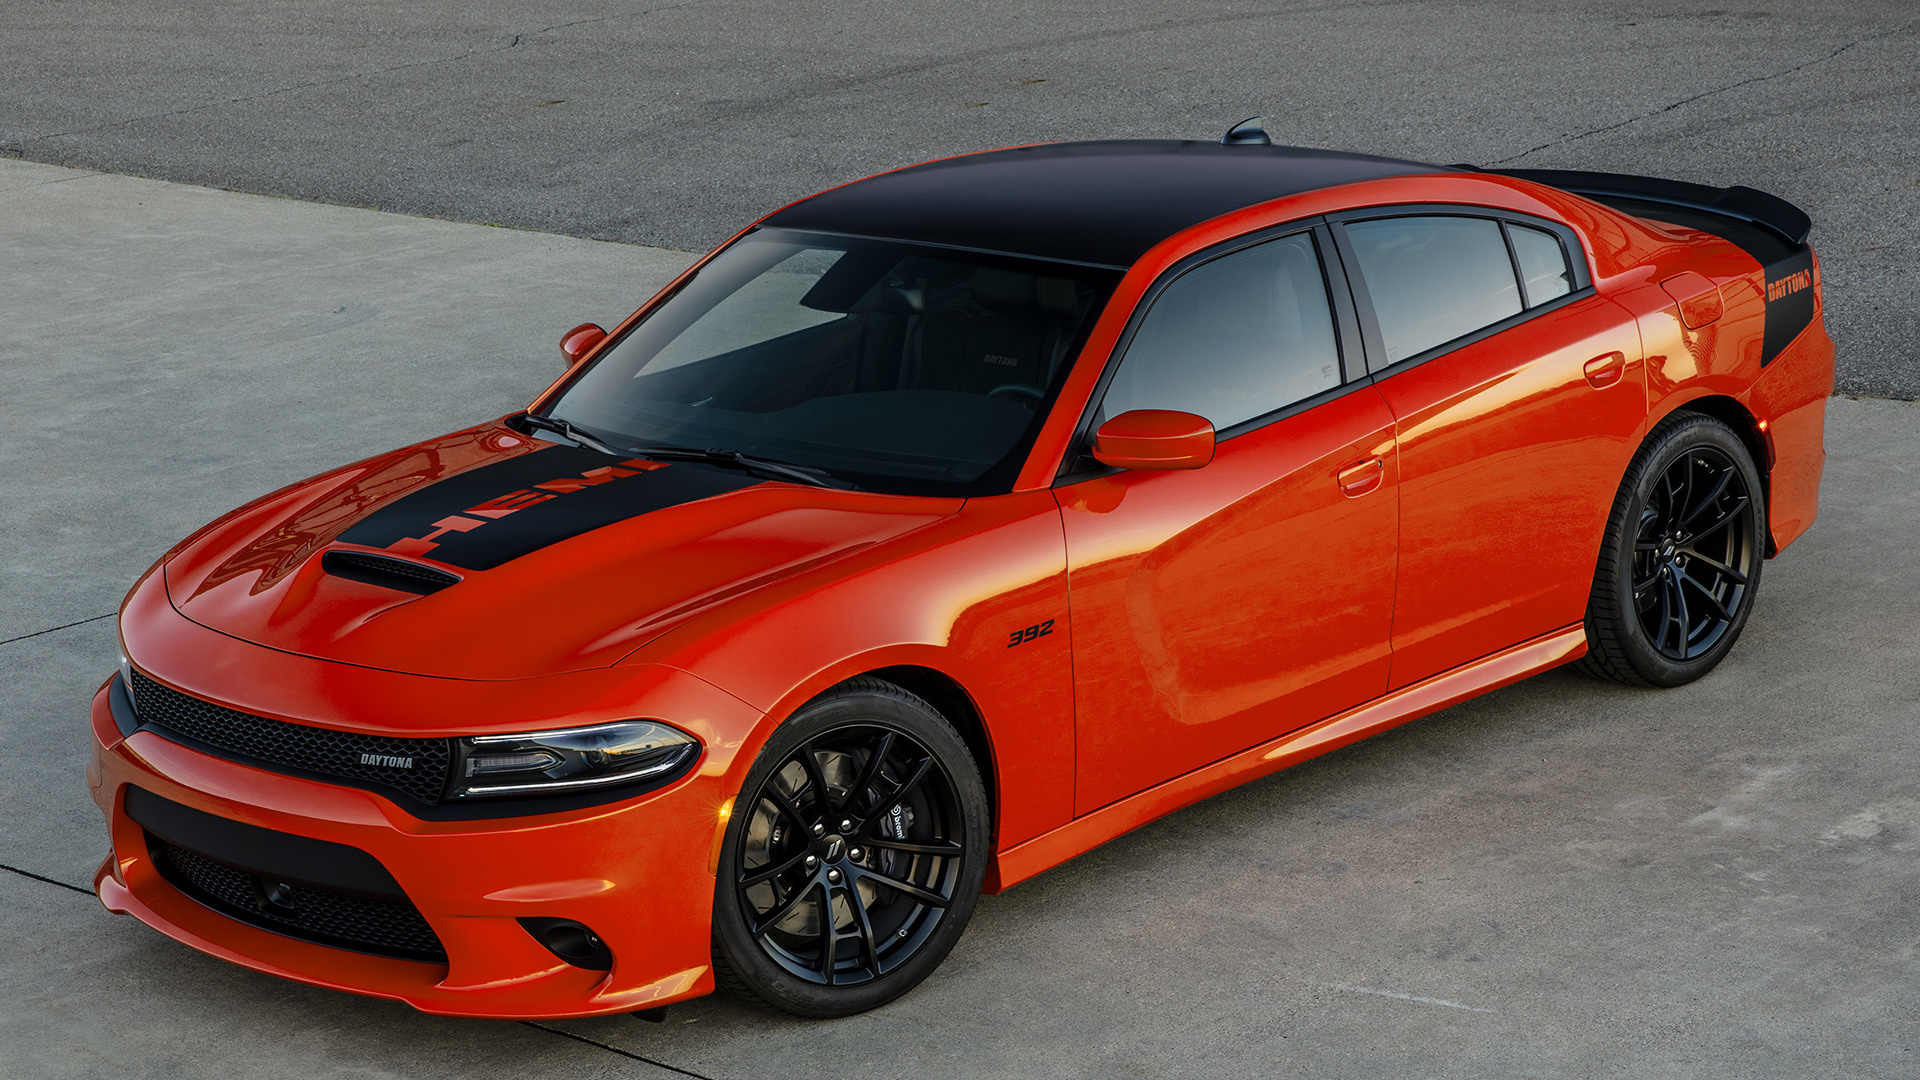 2017 Dodge Charger Daytona 392 Wallpapers And Hd Images